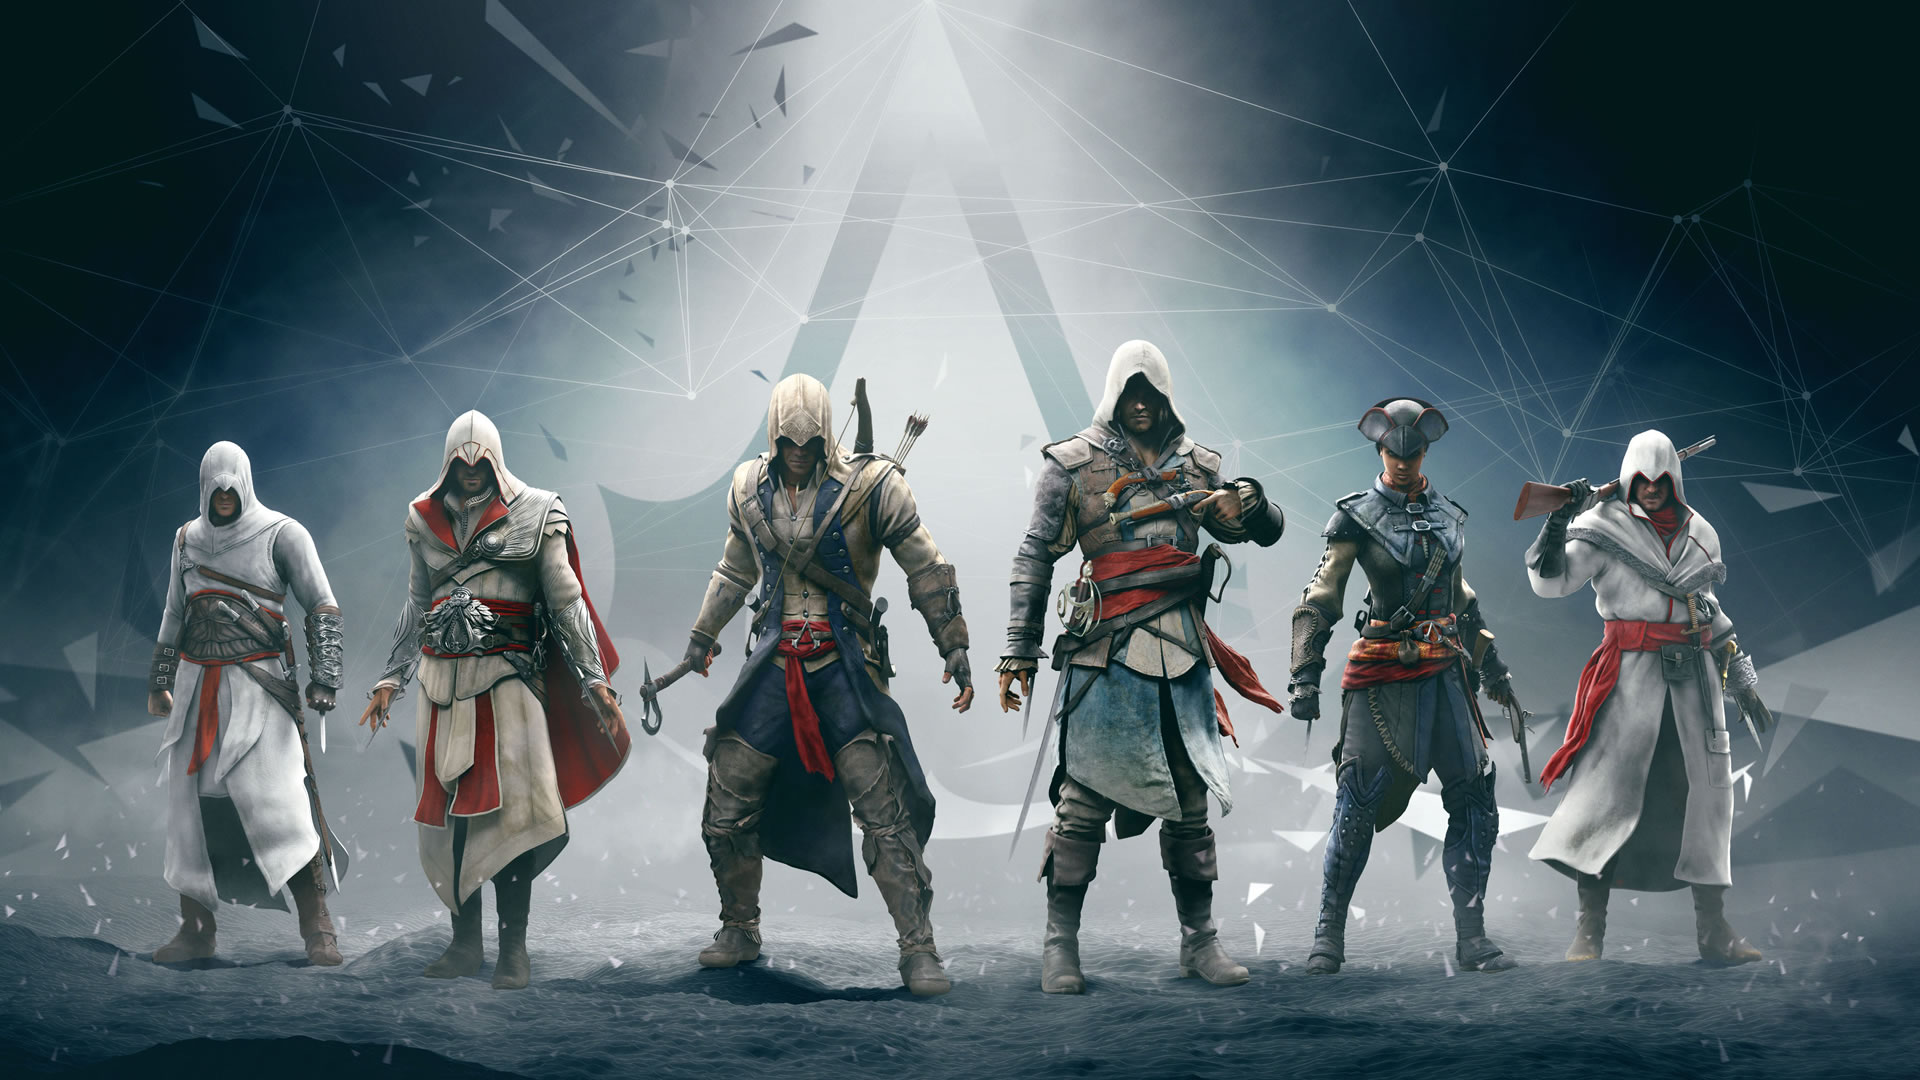 Assassins Creed Wallpaper Background